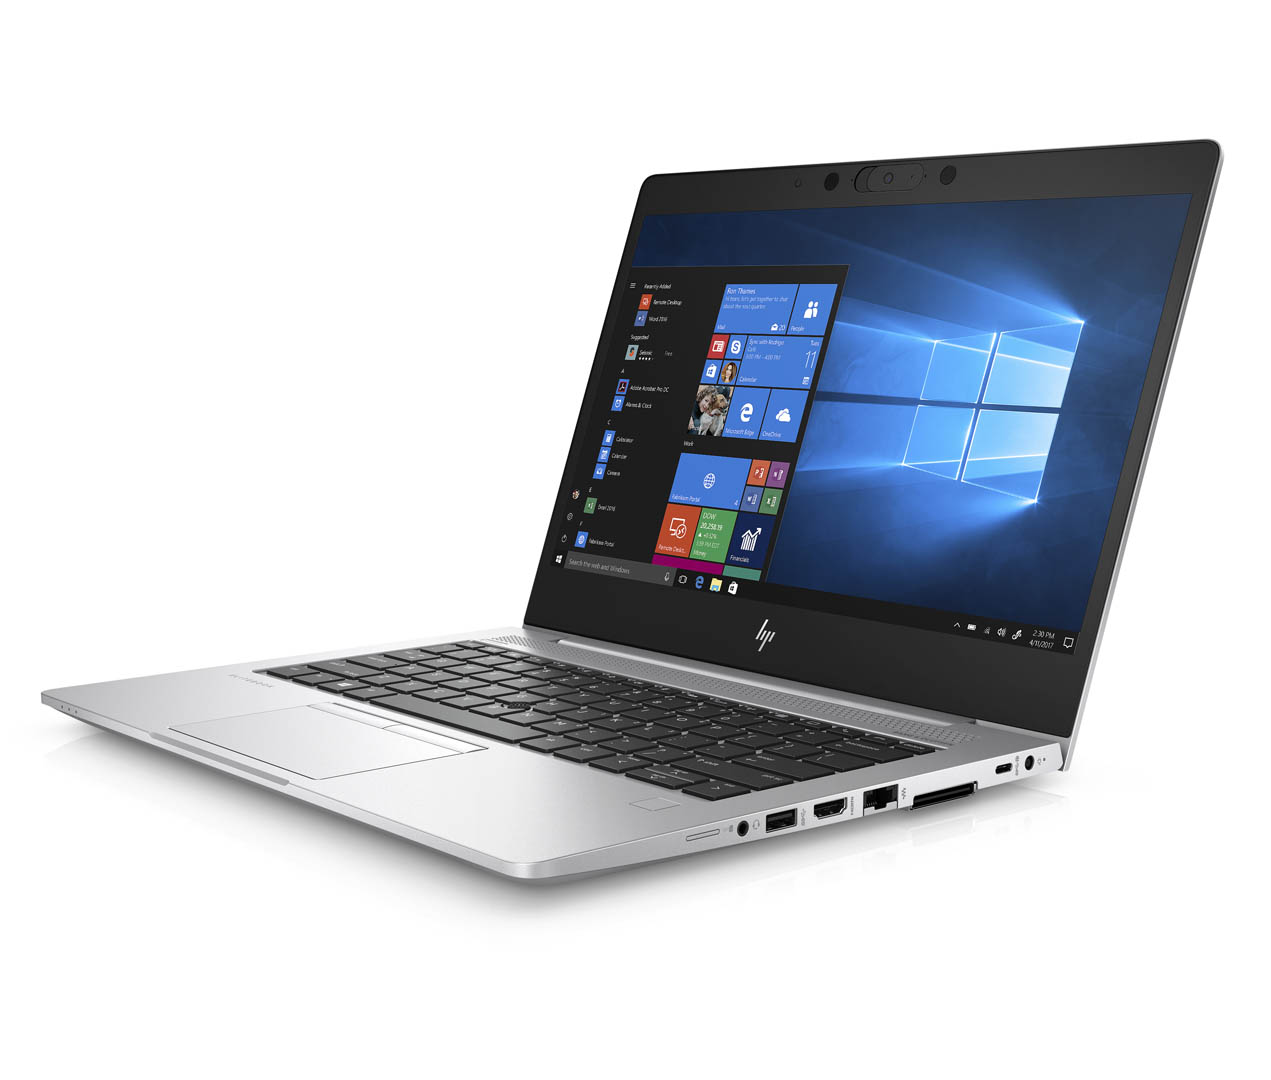 HP annuncia gli EliteBook 700 G6 e l'HP mt45 Mobile Thin Client 3